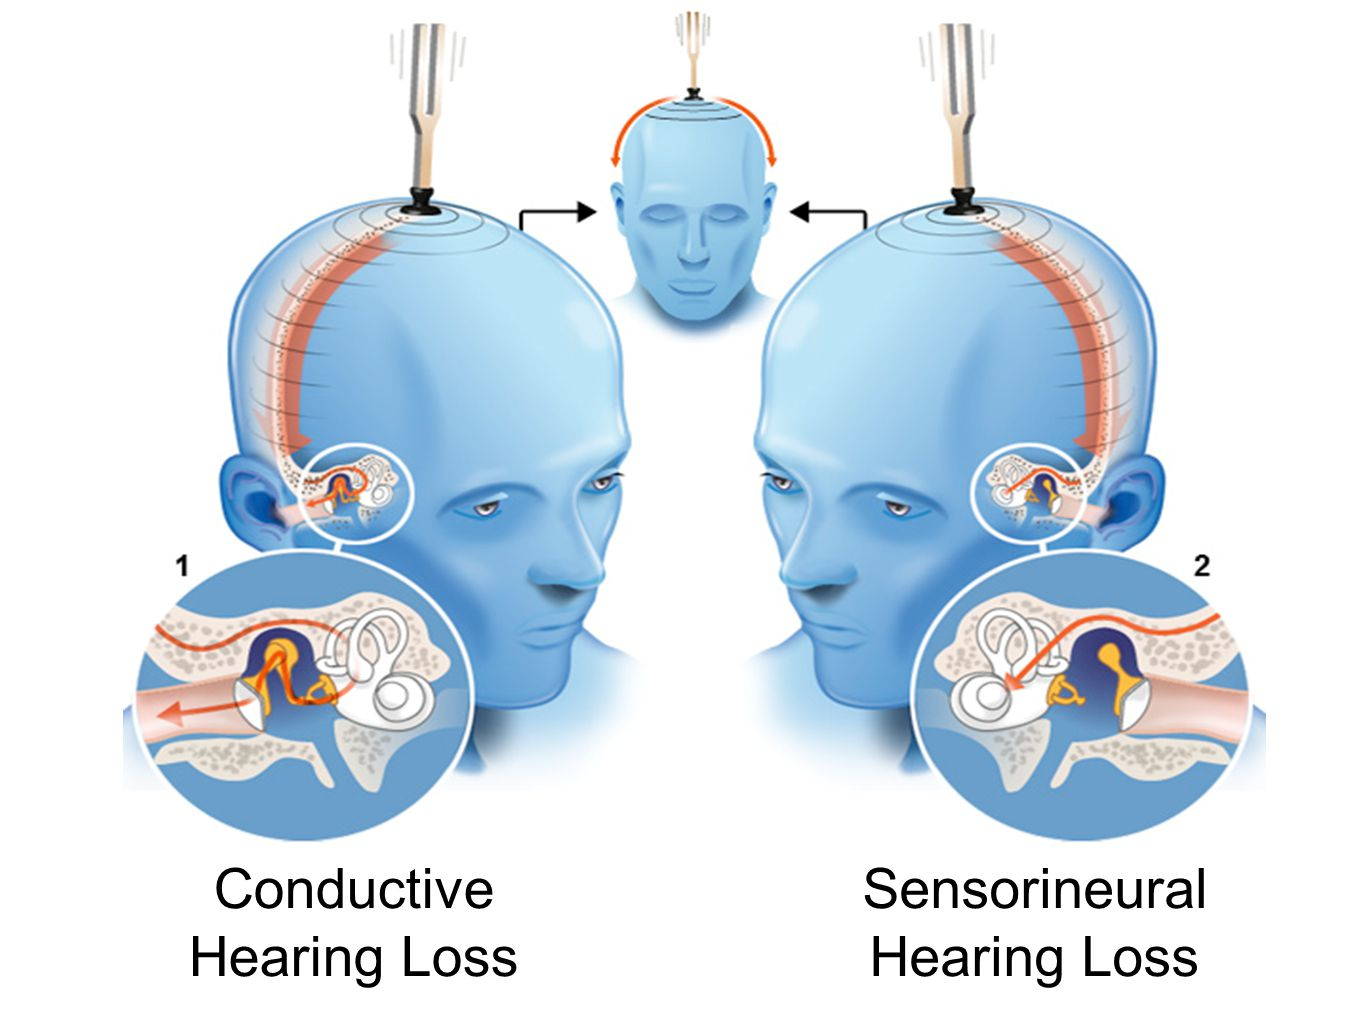 Conductive Hearing Loss Sensorineural Hearing Loss